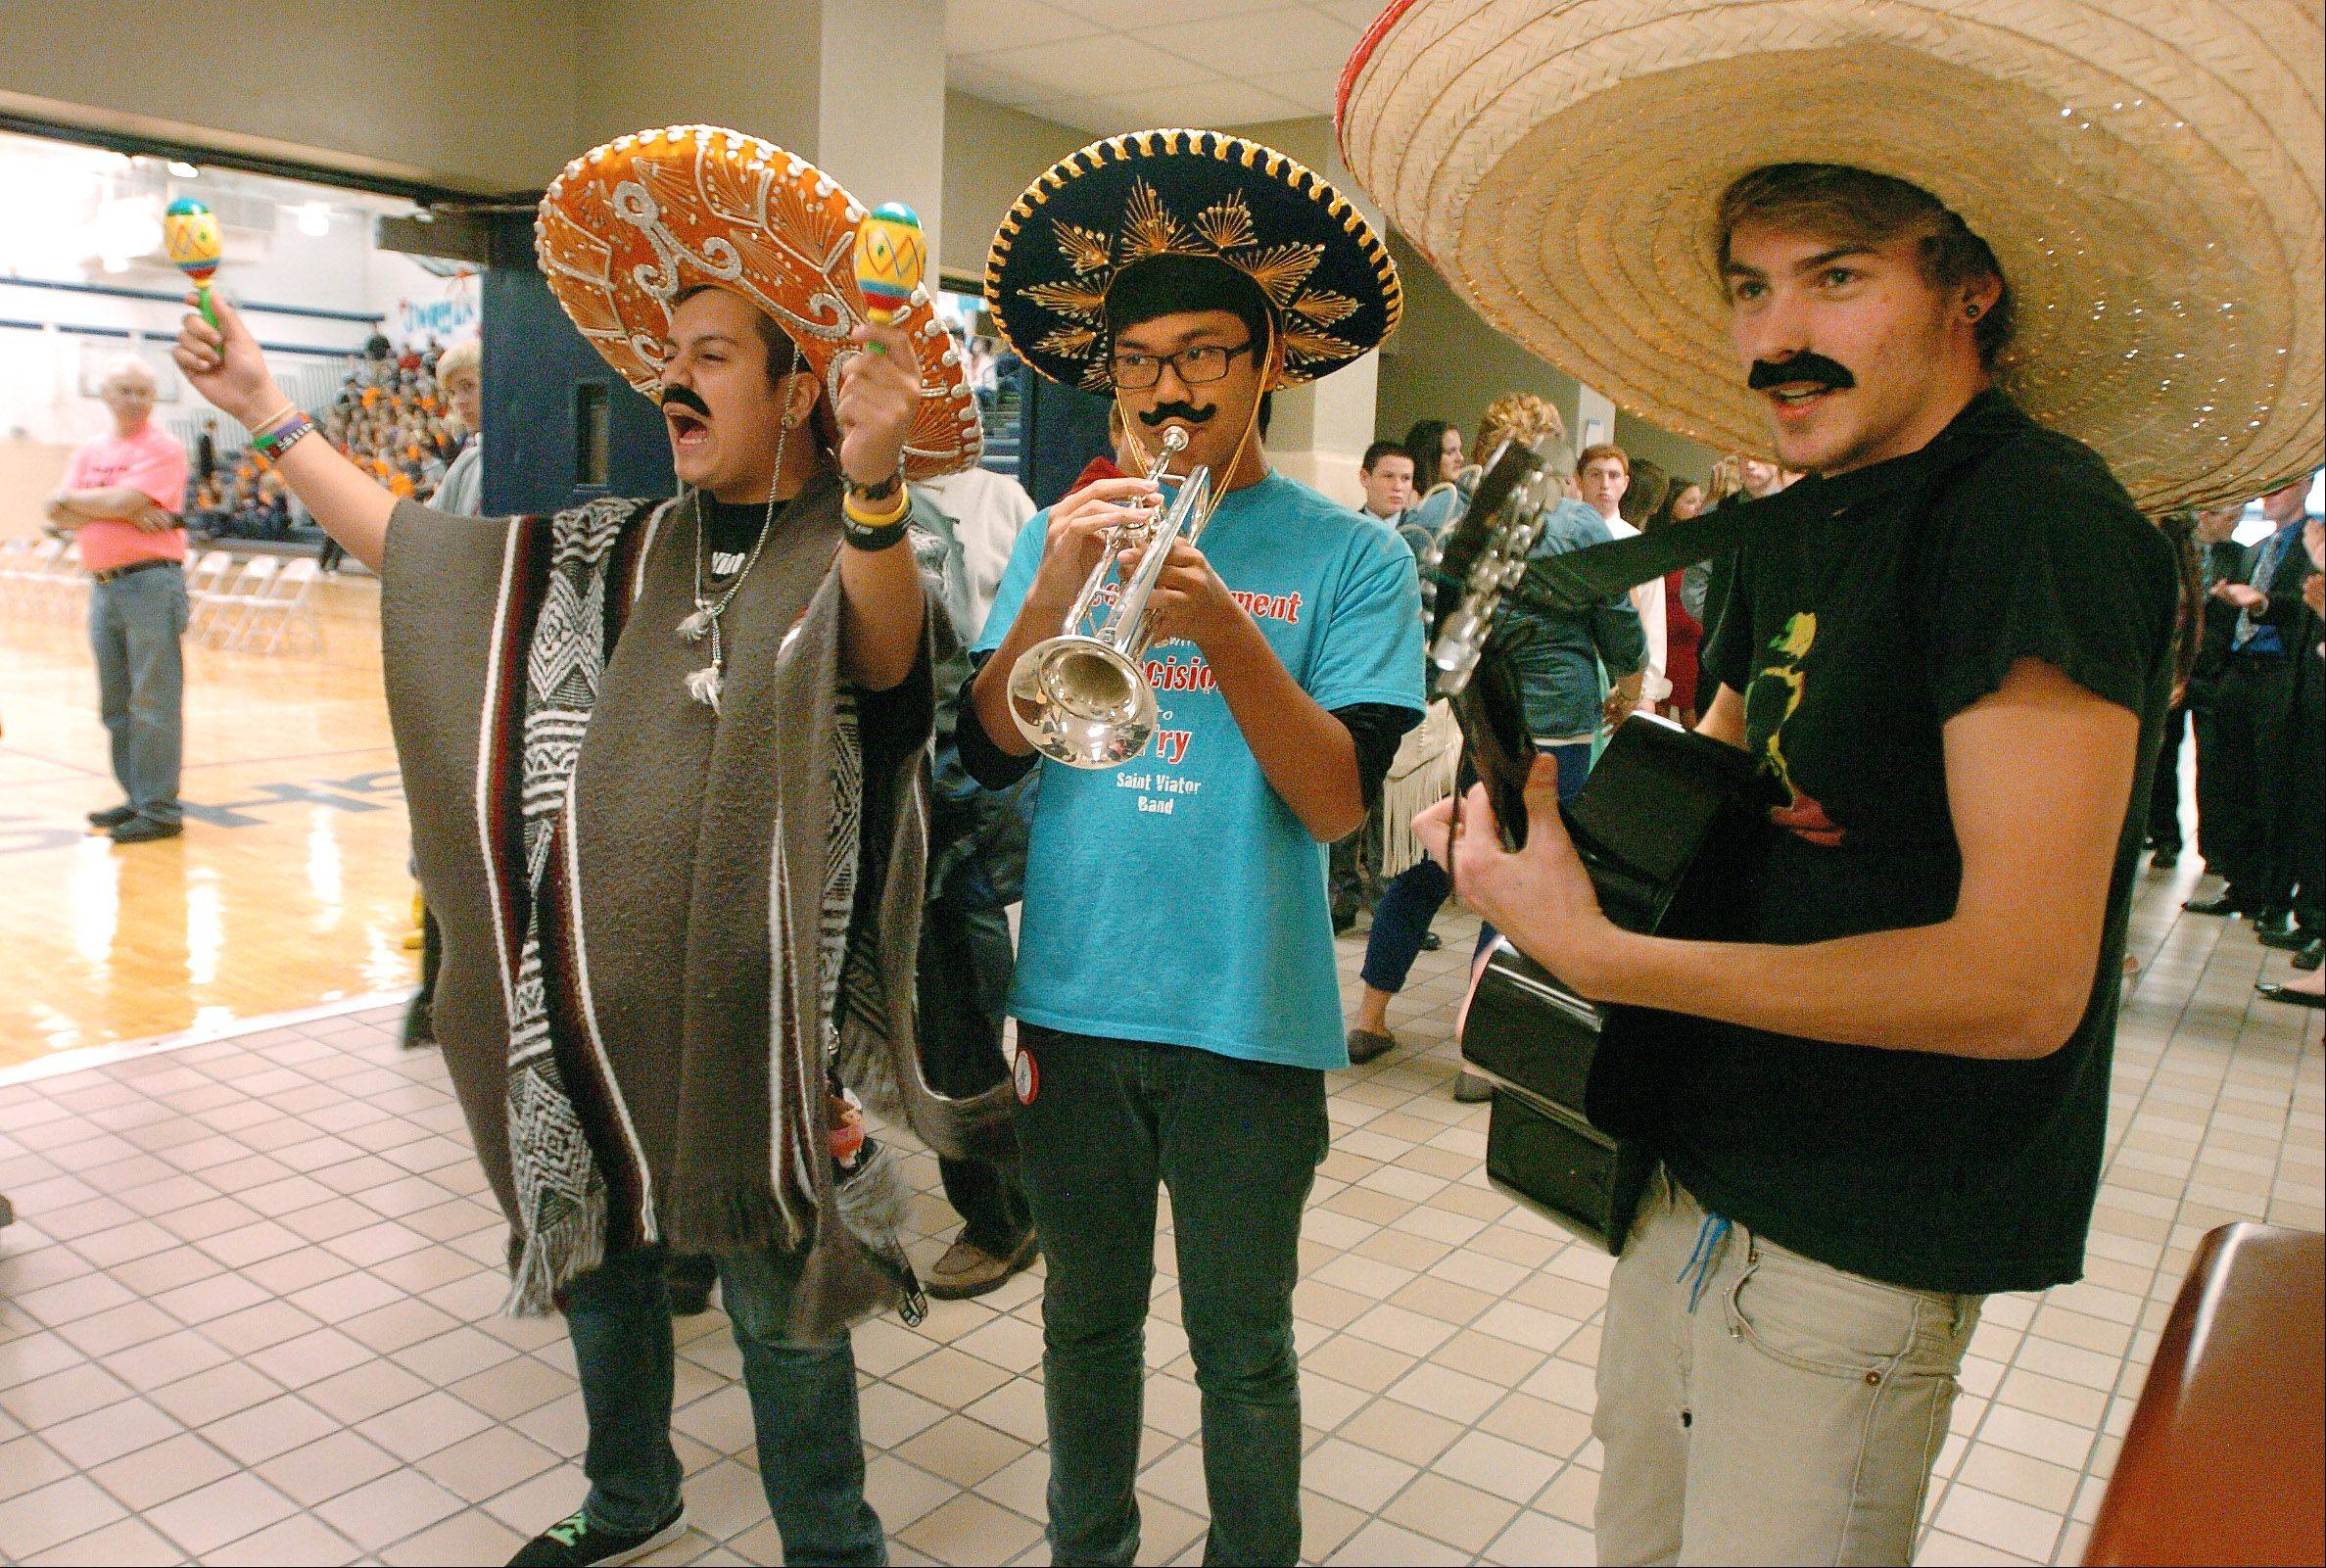 From left, Sergio Hernandez, Nathan Abay and James Pickering form an impromptu Mariachi band during St. Viator's Homecoming Pep Rally.